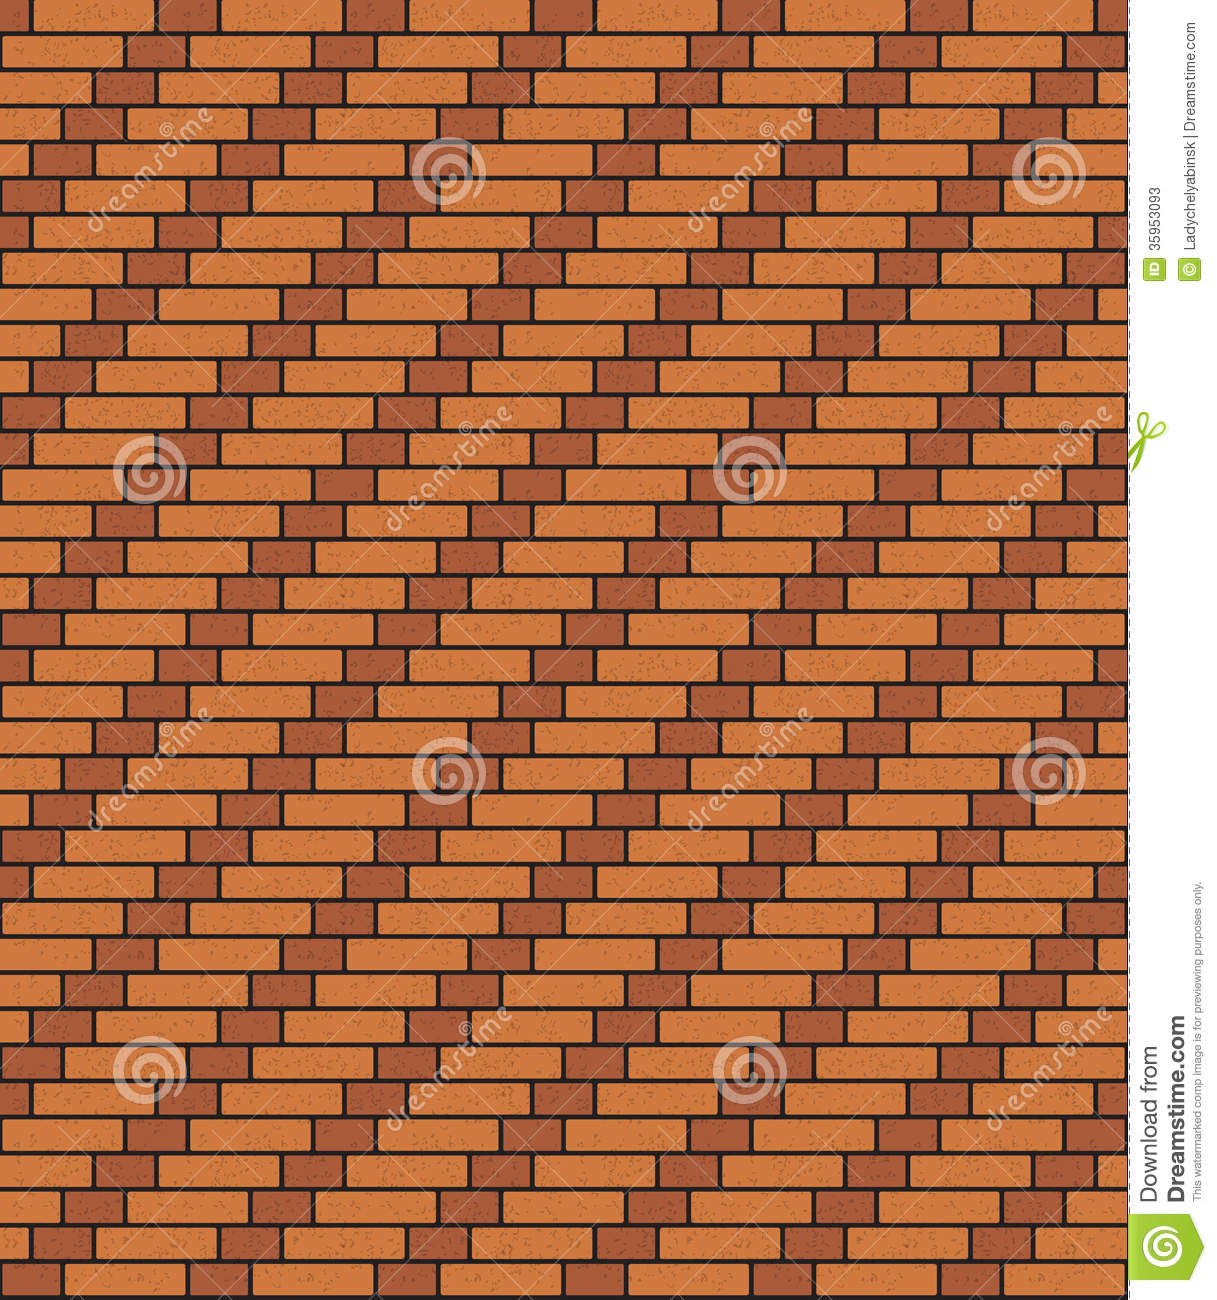 Dutch spiral brickwork stock photos image 35953093 for Uses for a brick